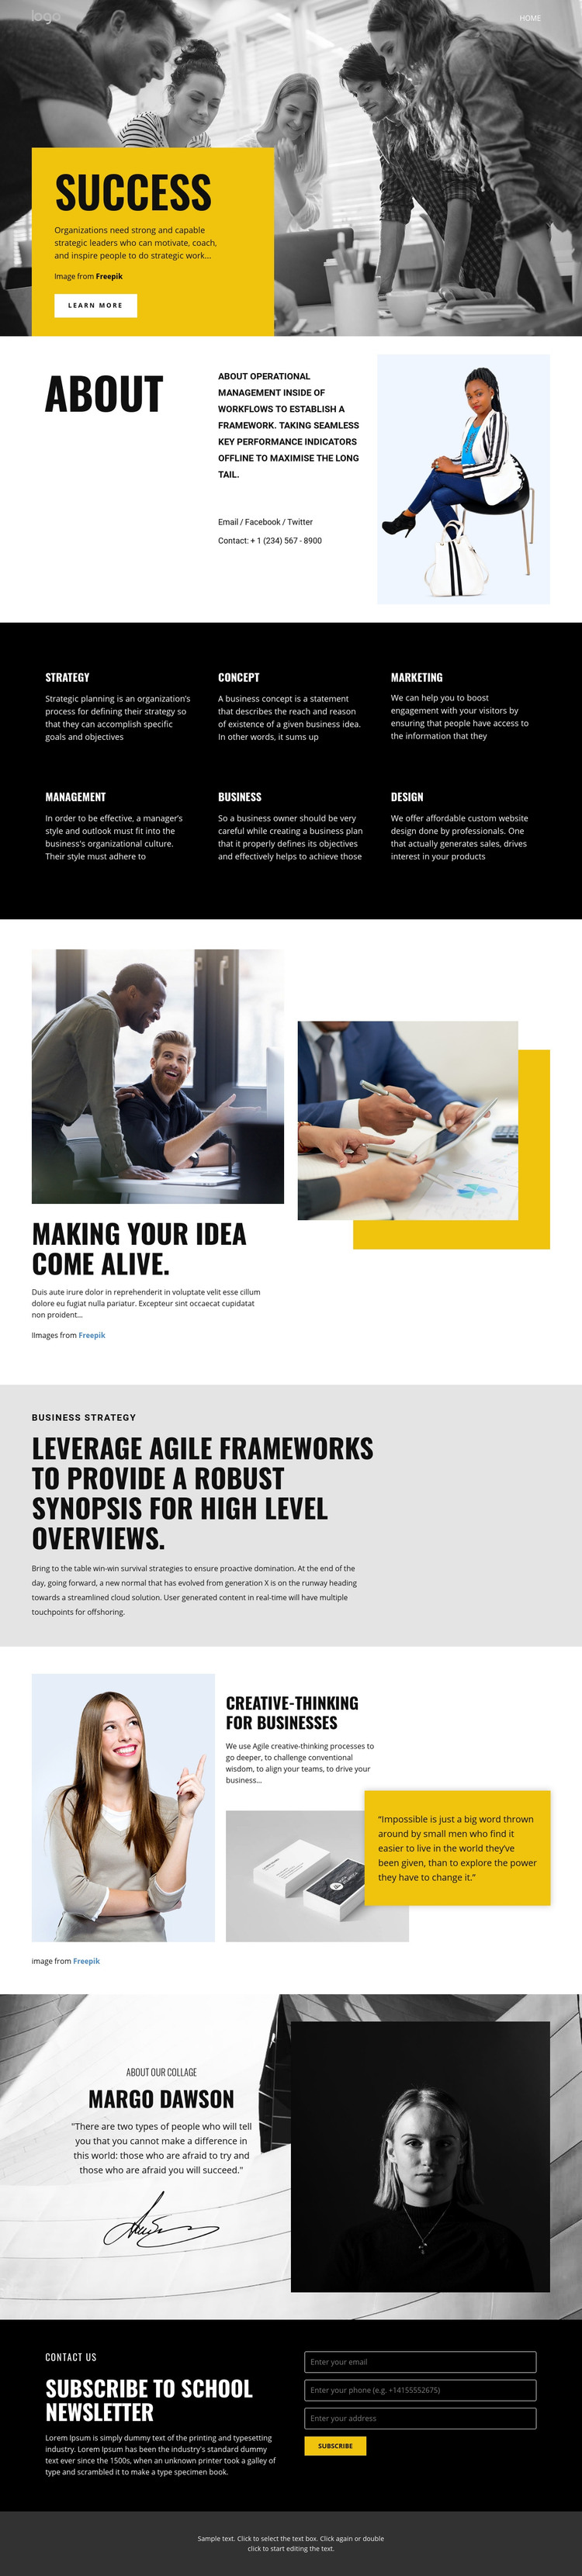 Capable people in businesses Homepage Design